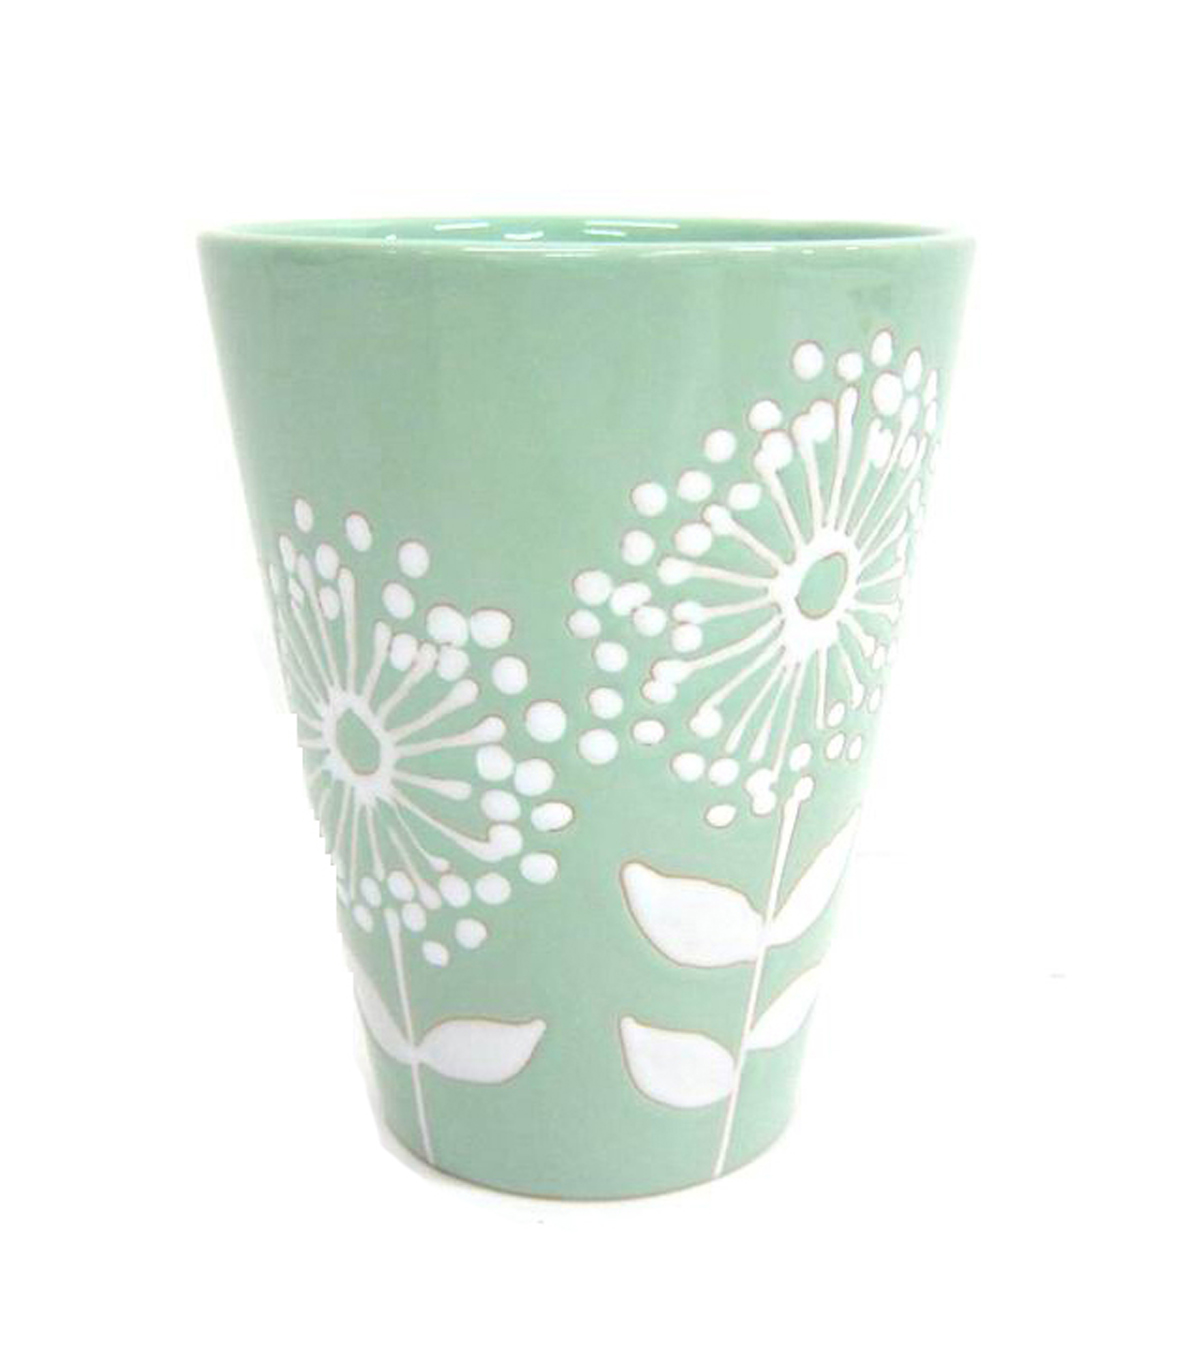 Bloom Room Ceramic Pot-Green With White Flowers